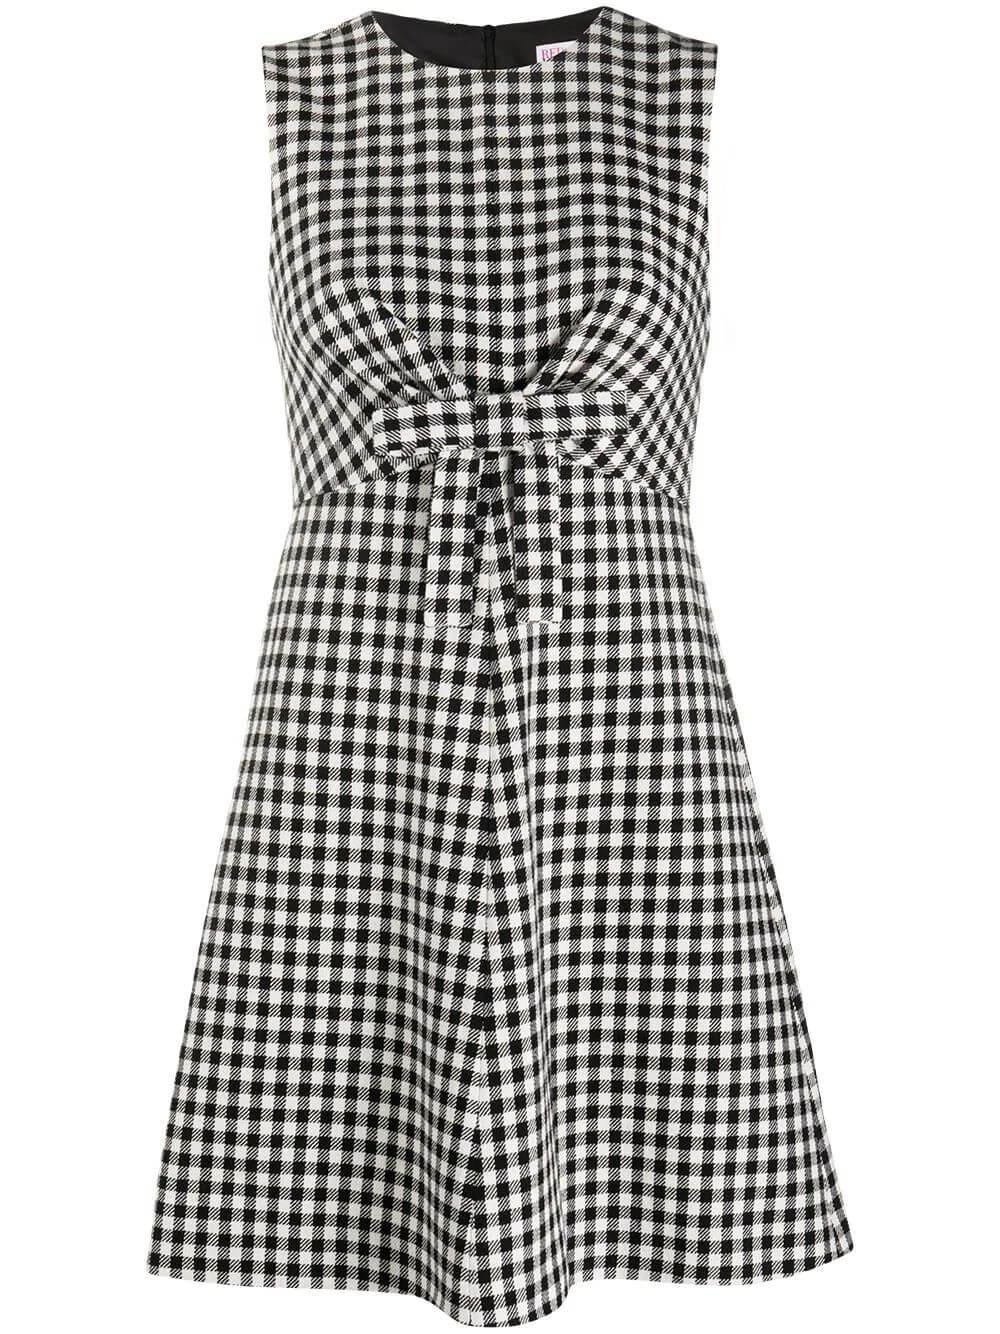 Plaid Dress With Bow Detail